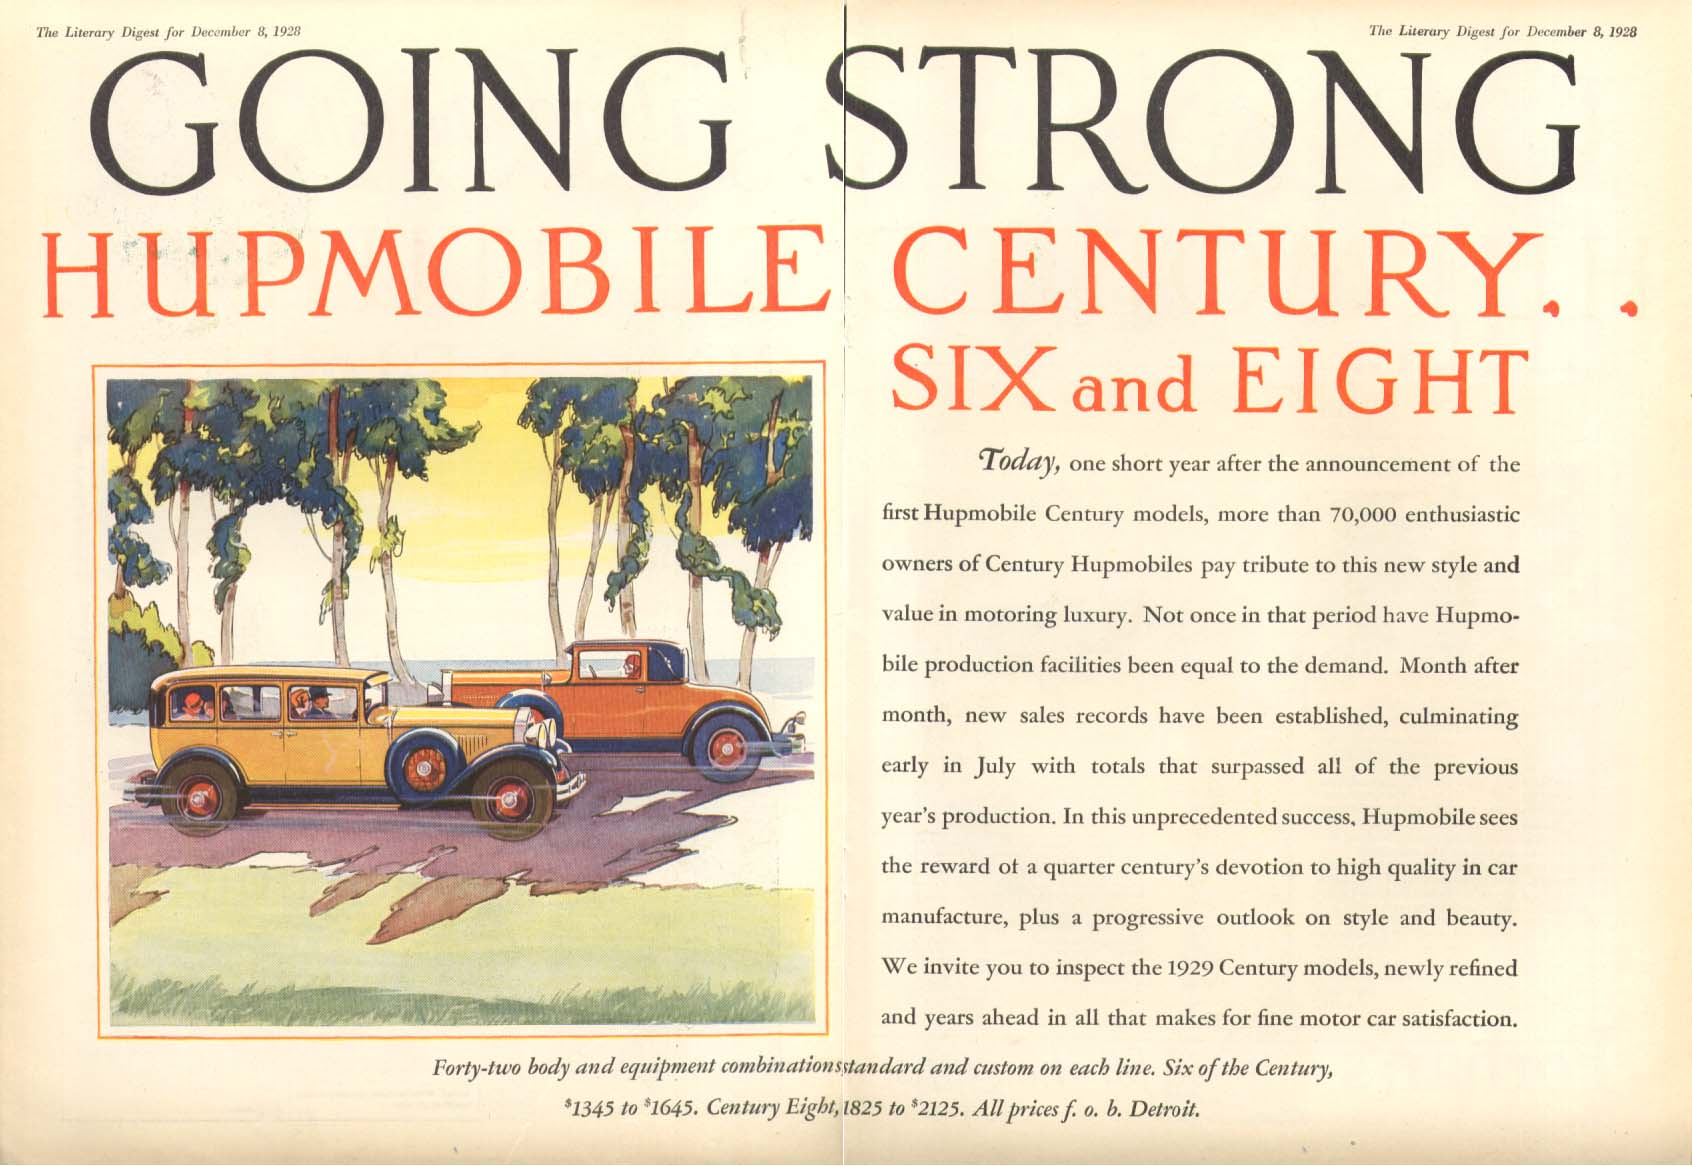 Going Strong Hupmobile Century 6 & 8 ad 1929